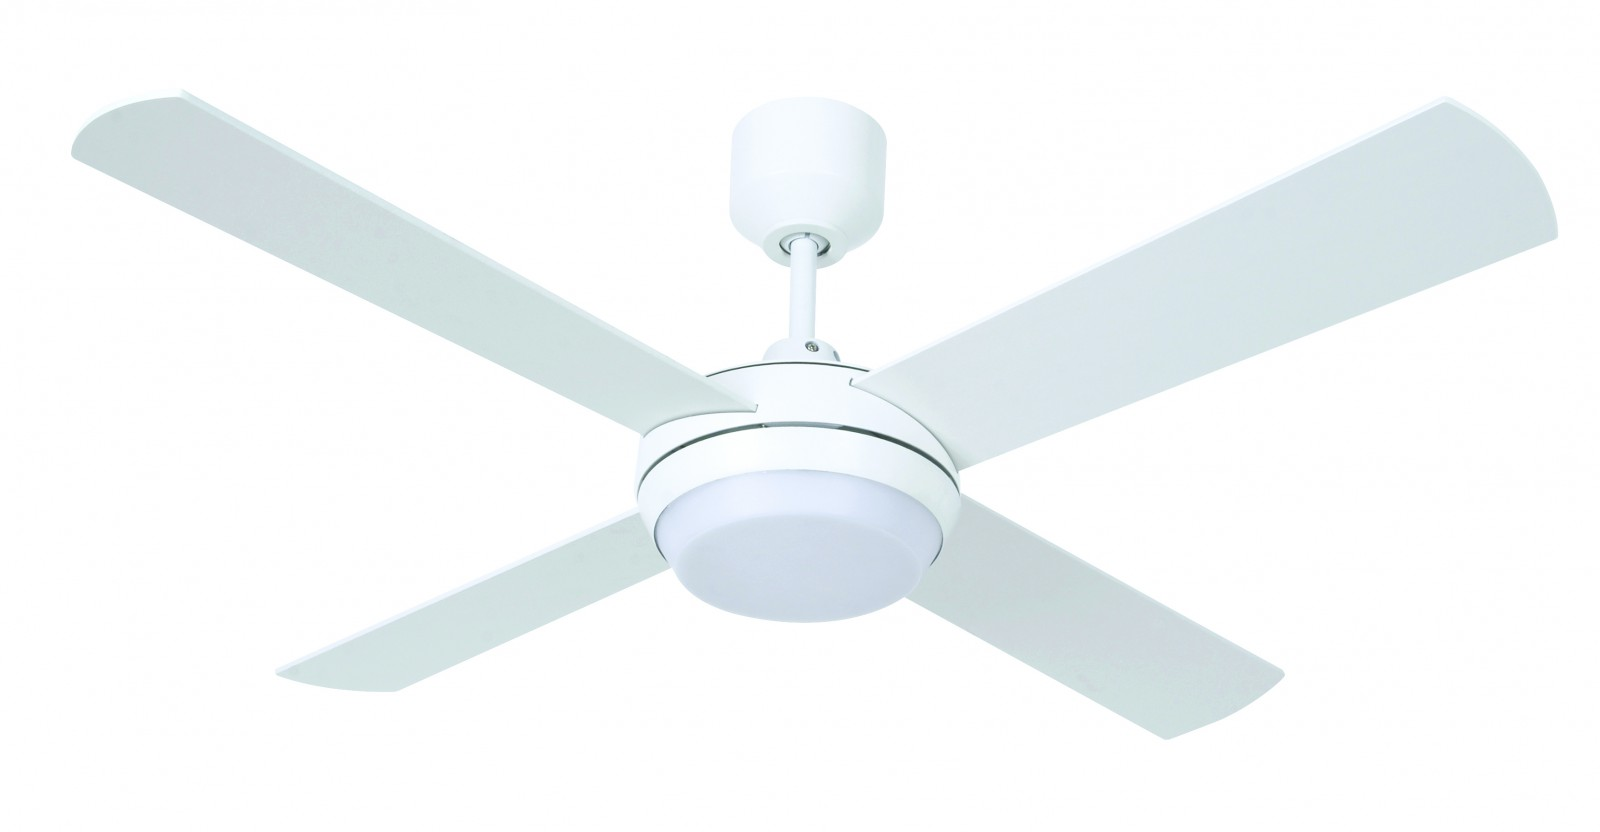 Beacon led ceiling fan altitude eco white 122 cm 48 with remote beacon led ceiling fan altitude eco white 122 cm 48quot with remote control aloadofball Gallery